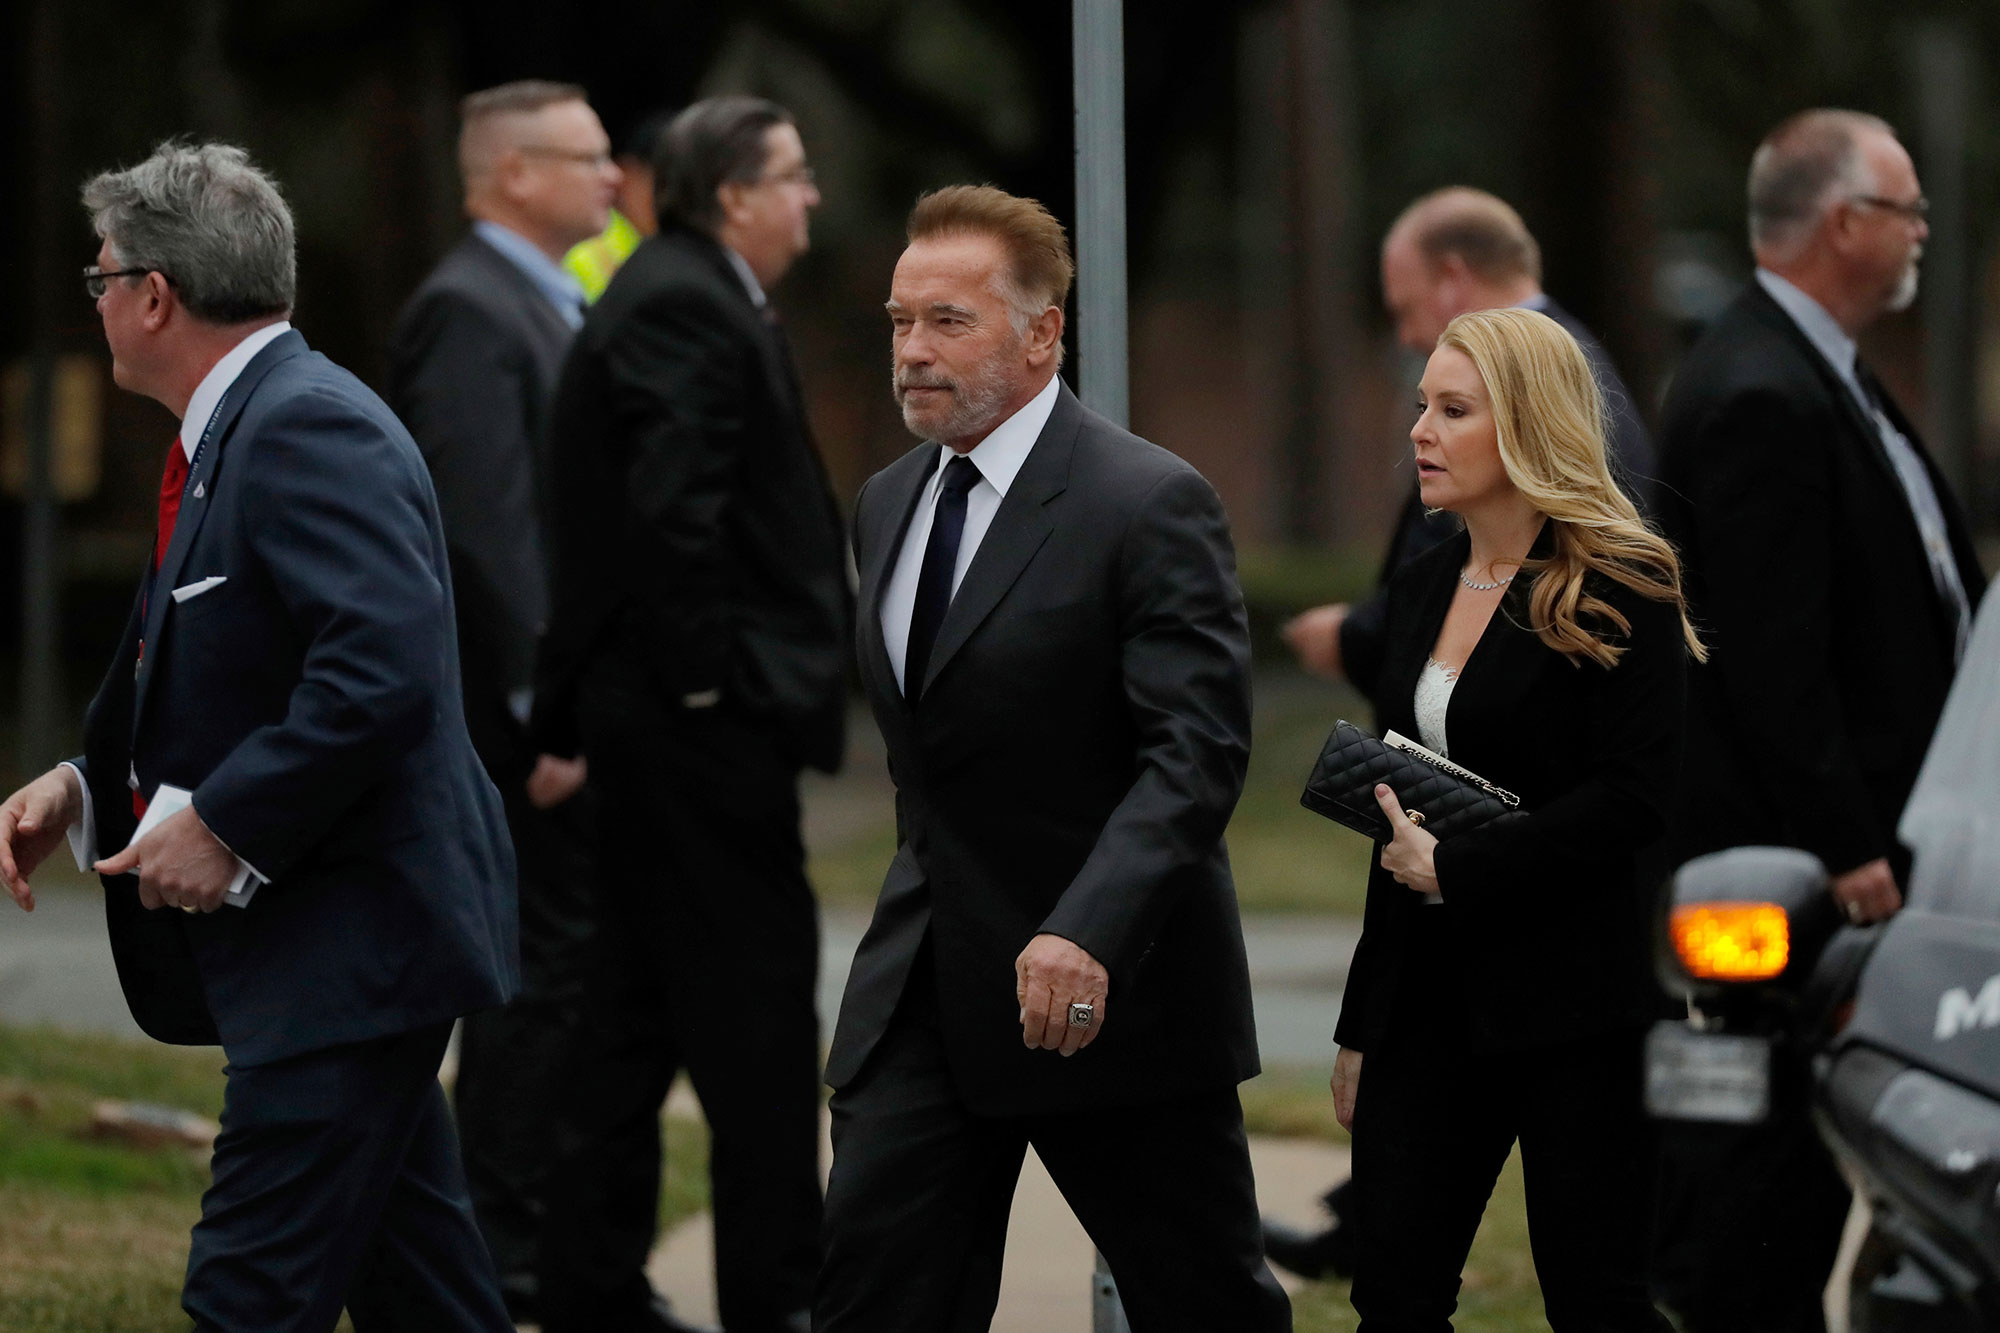 "<div class=""meta image-caption""><div class=""origin-logo origin-image none""><span>none</span></div><span class=""caption-text"">Former California Gov. Arnold Schwarzenegger arrives at a funeral for former President George H.W. Bush at St. Martin's Episcopal Church Thursday, Dec. 6, 2018, in Houston. (Gerald Herbert/AP Photo)</span></div>"